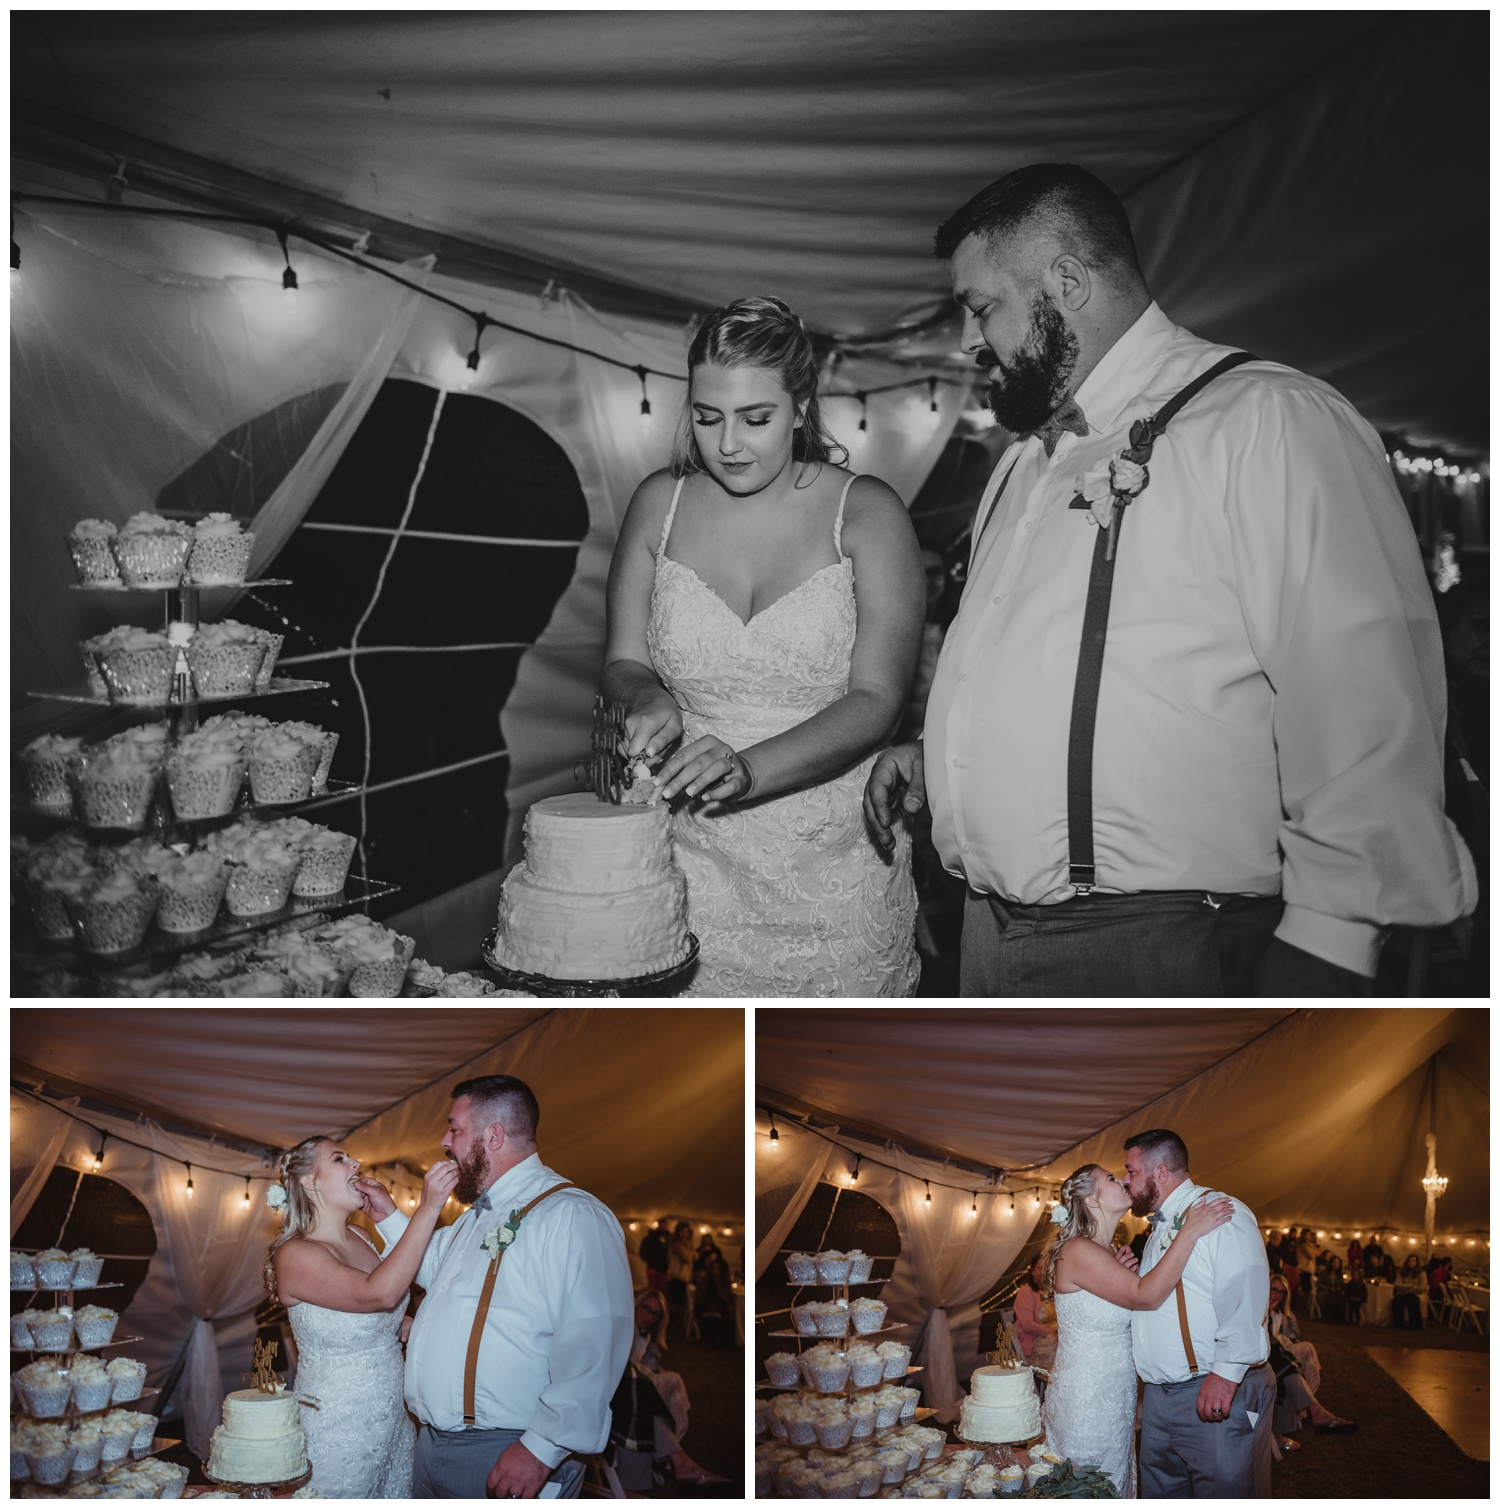 The wedding reception at The Warren Estate had the bride and groom cutting the cake and feeding each other cupcakes, images by Rose Trail Images of Rolesville, NC.